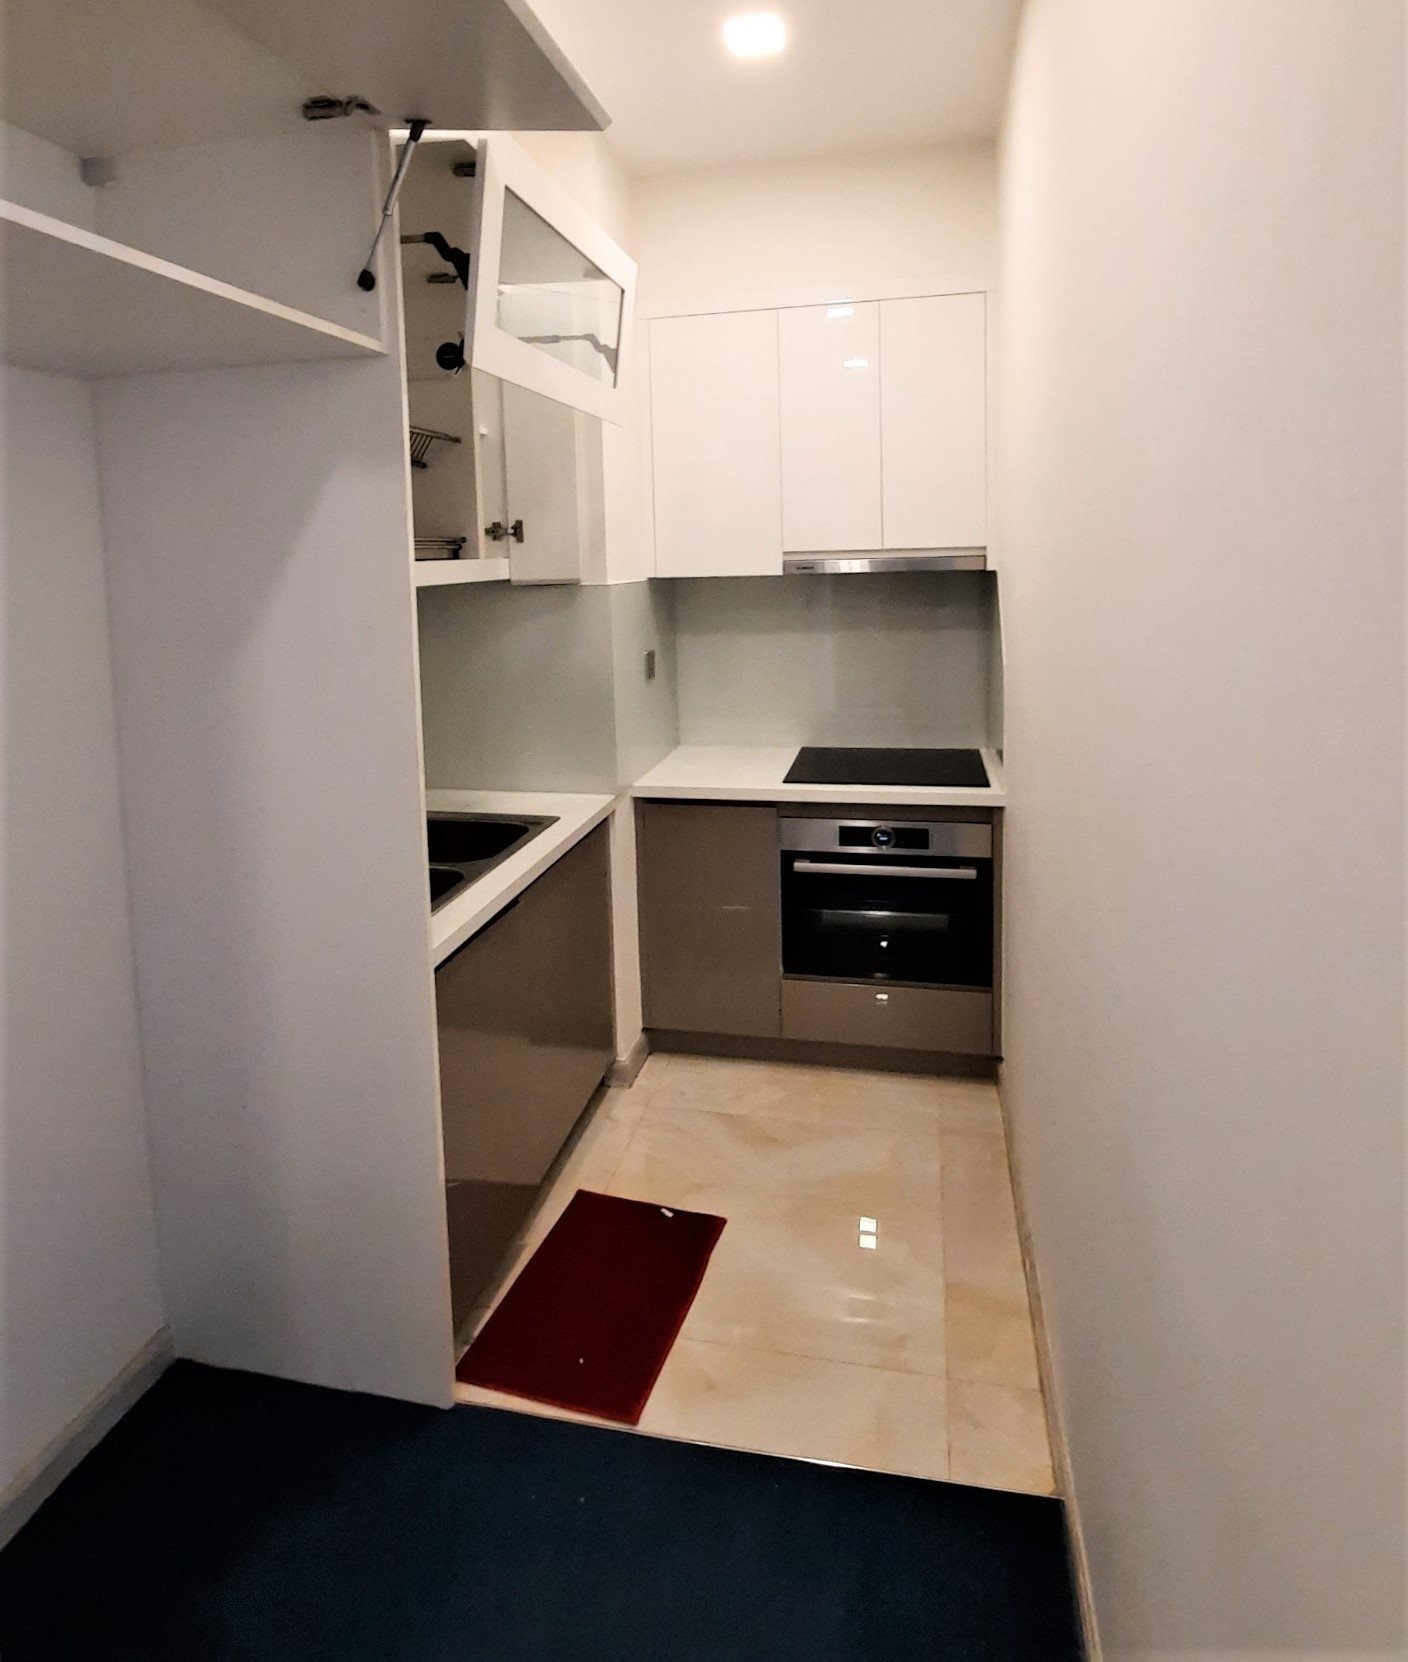 D102680 - Vinhomes Golden River Apartment For Rent & Sale Ho Chi Minh - 1 bedroom